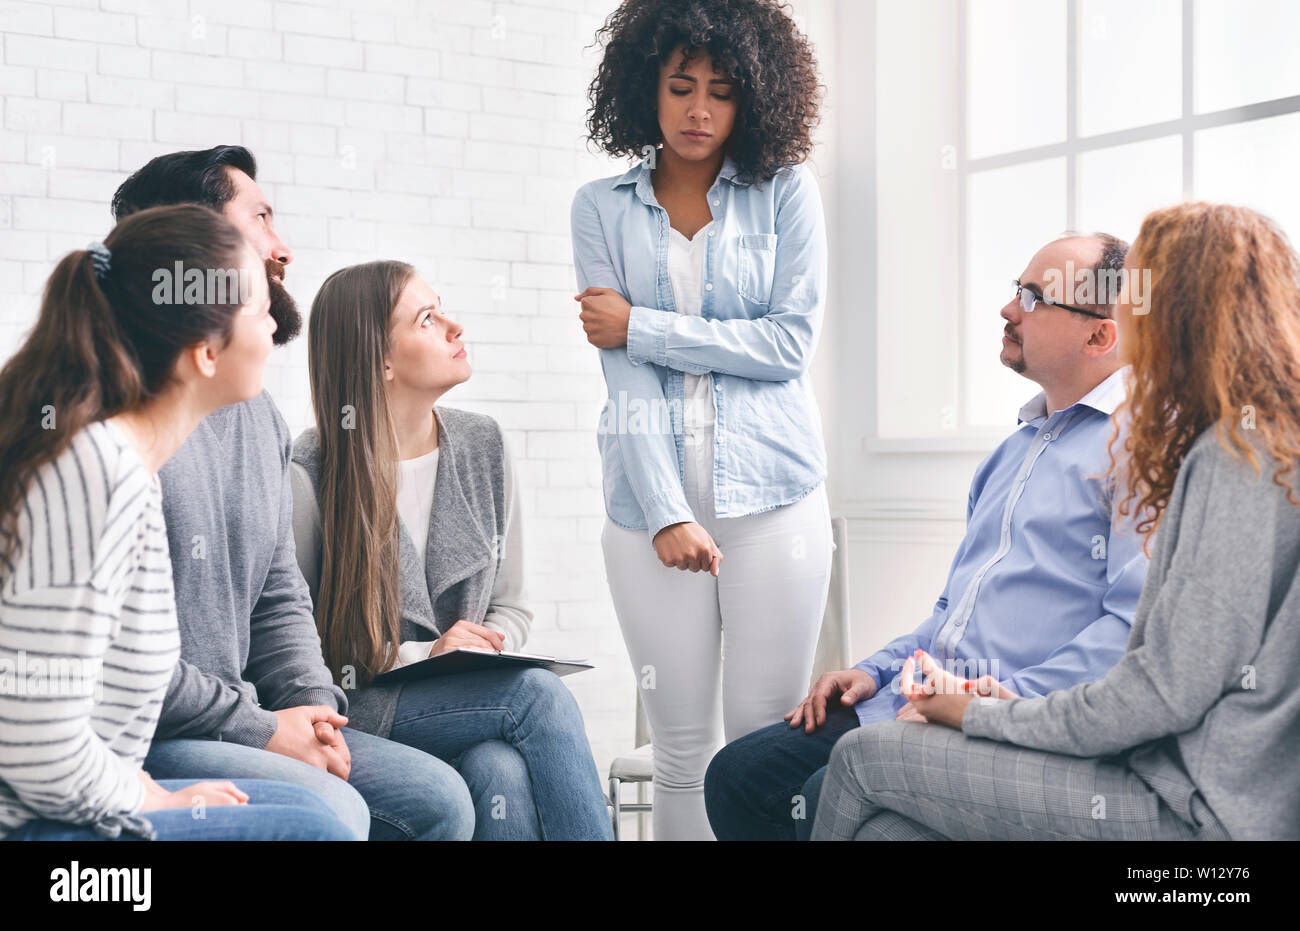 Rehab group listening to stressed woman standing up Stock Photo